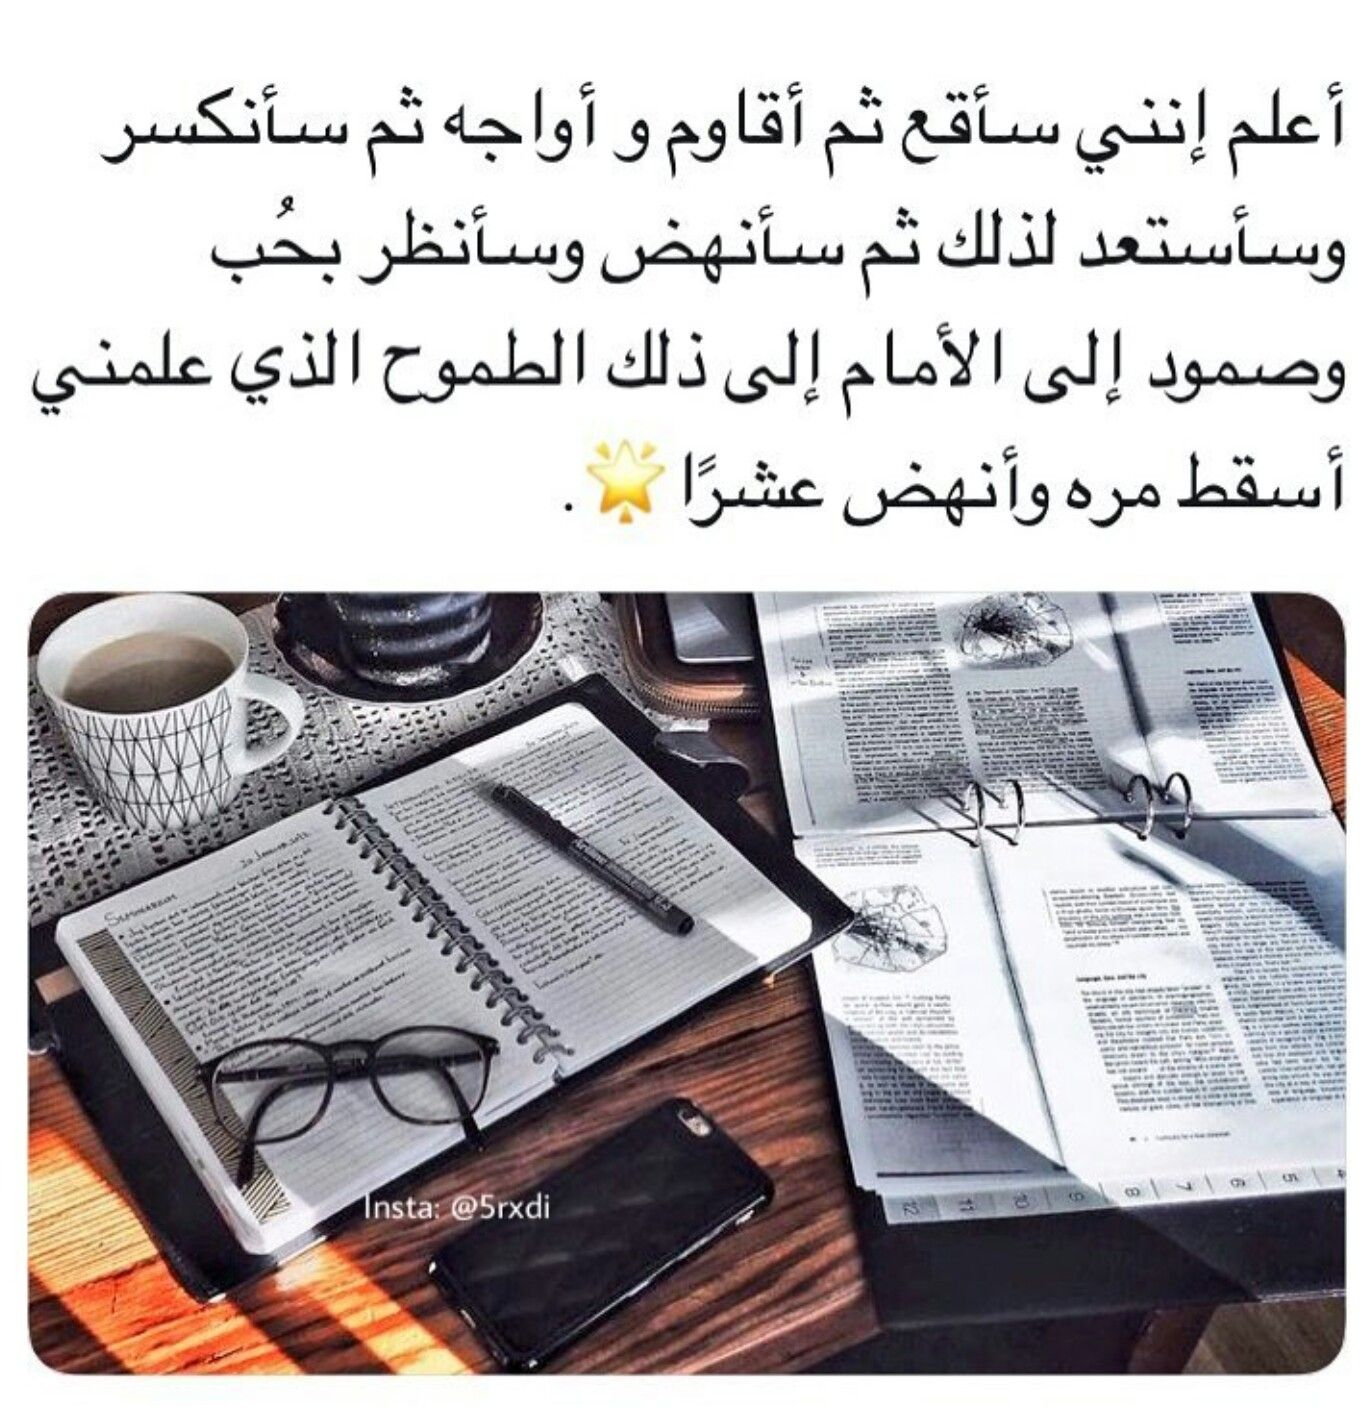 Pin By La Reina Aya On نجاح Success Study Motivation Quotes Study Quotes Medical Quotes